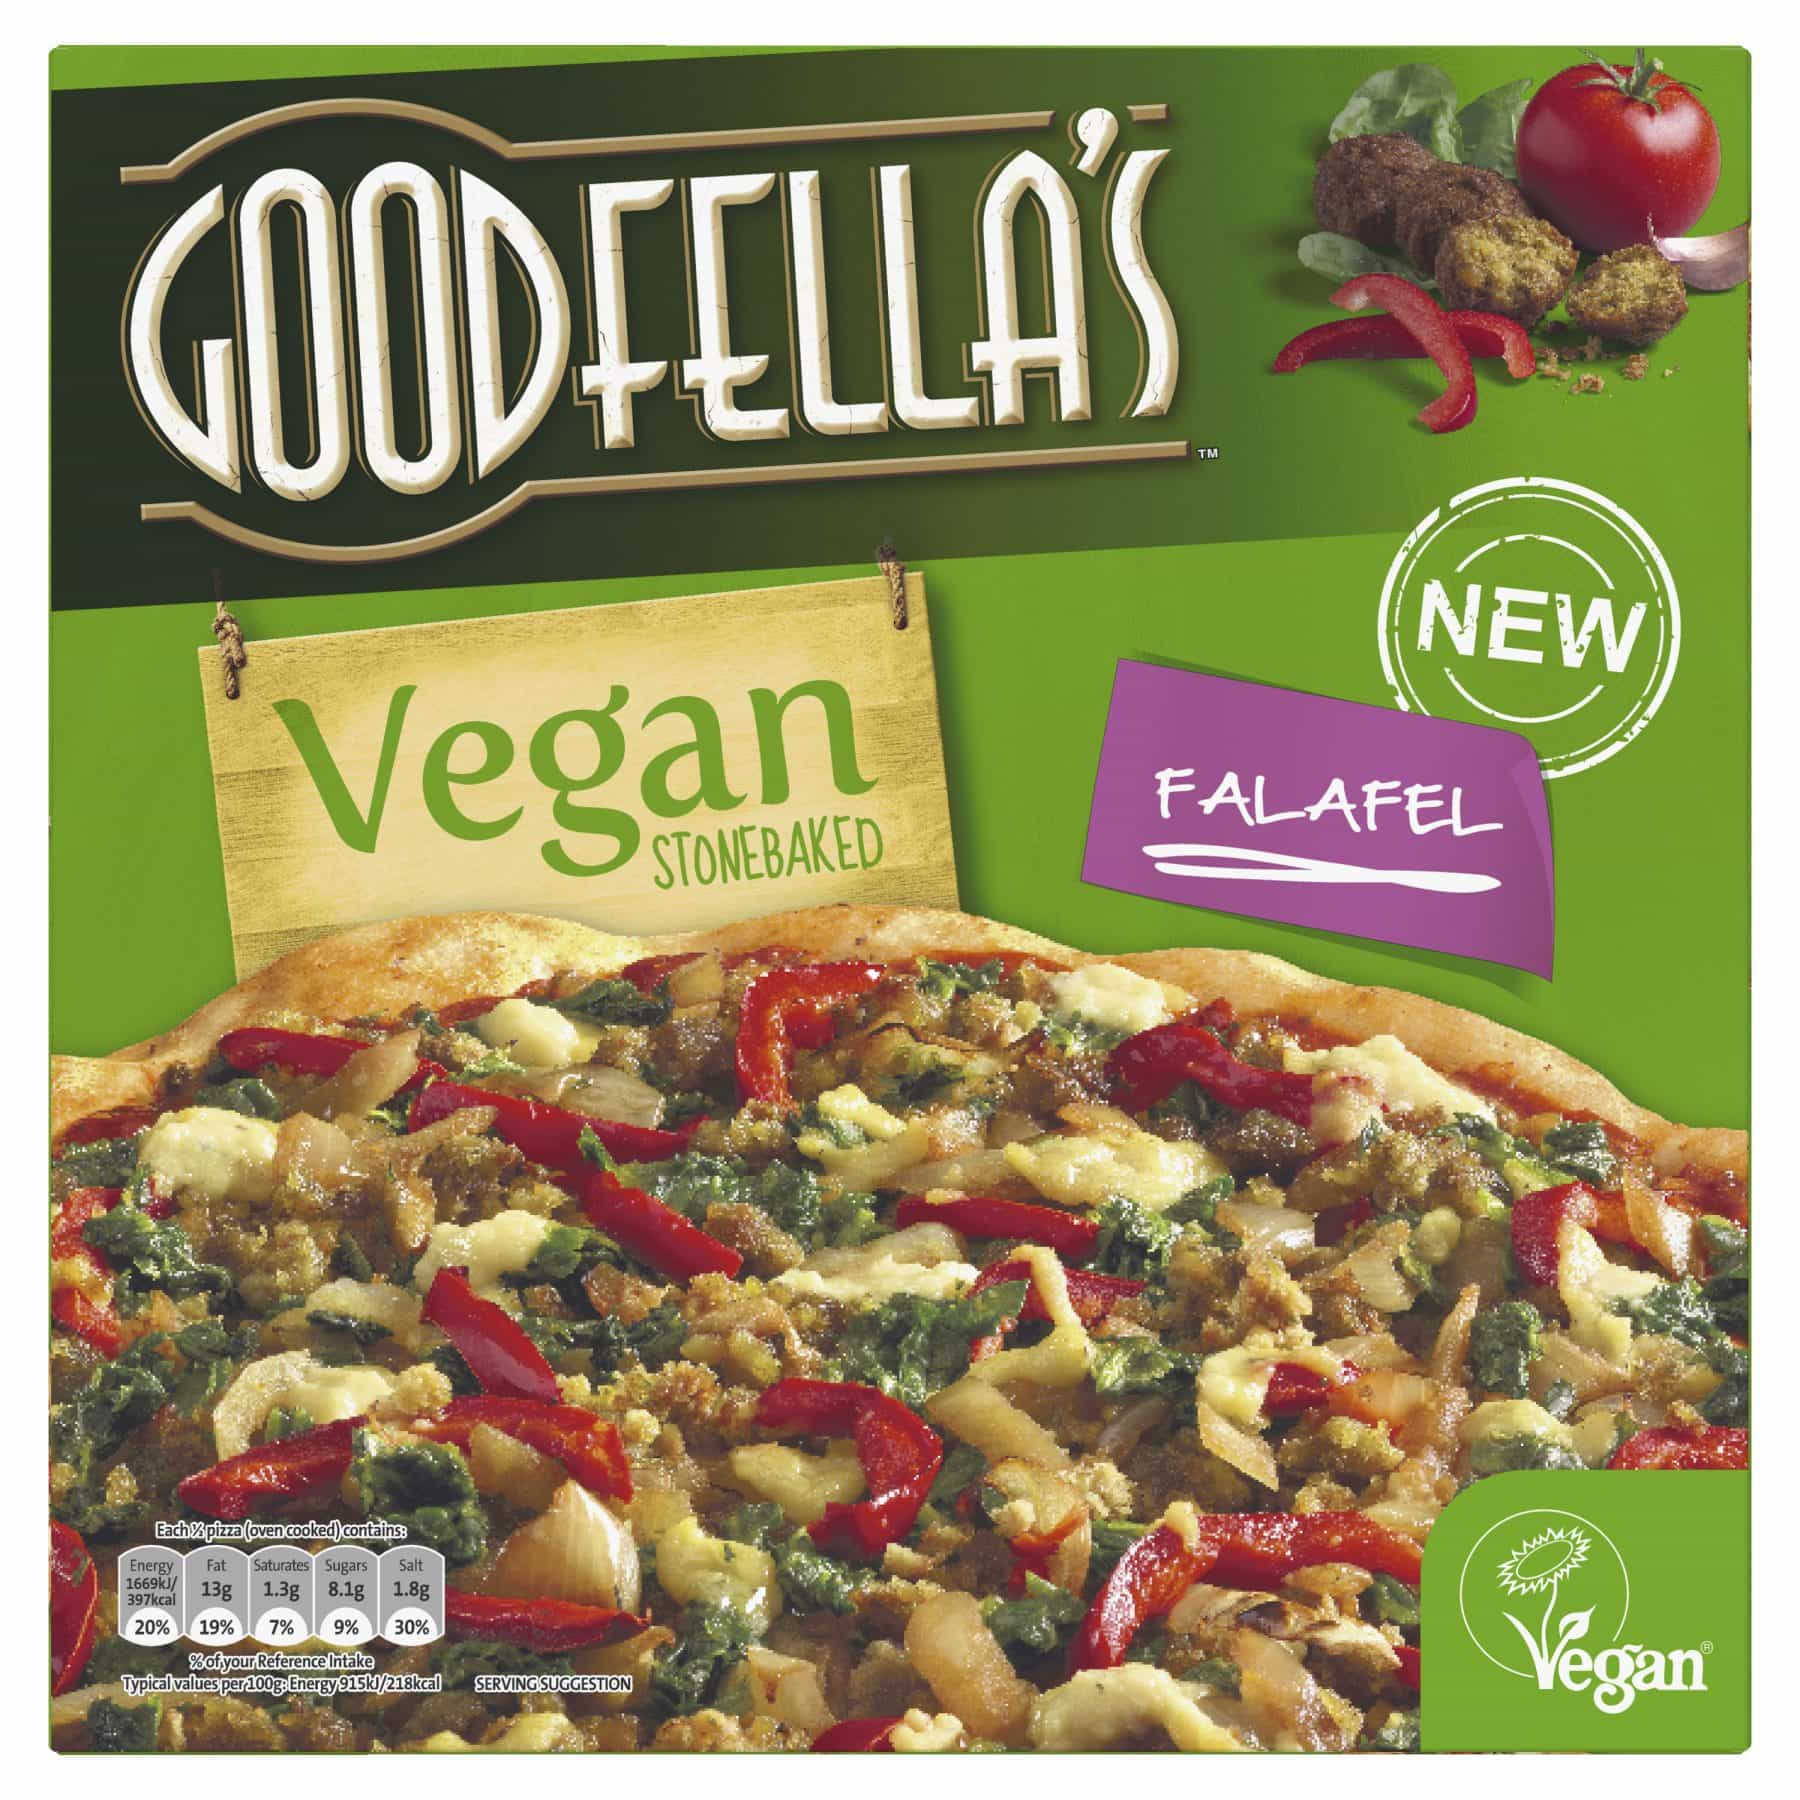 Goodfella's Launching New Frozen Vegan Pizza, Available in March 2018 1